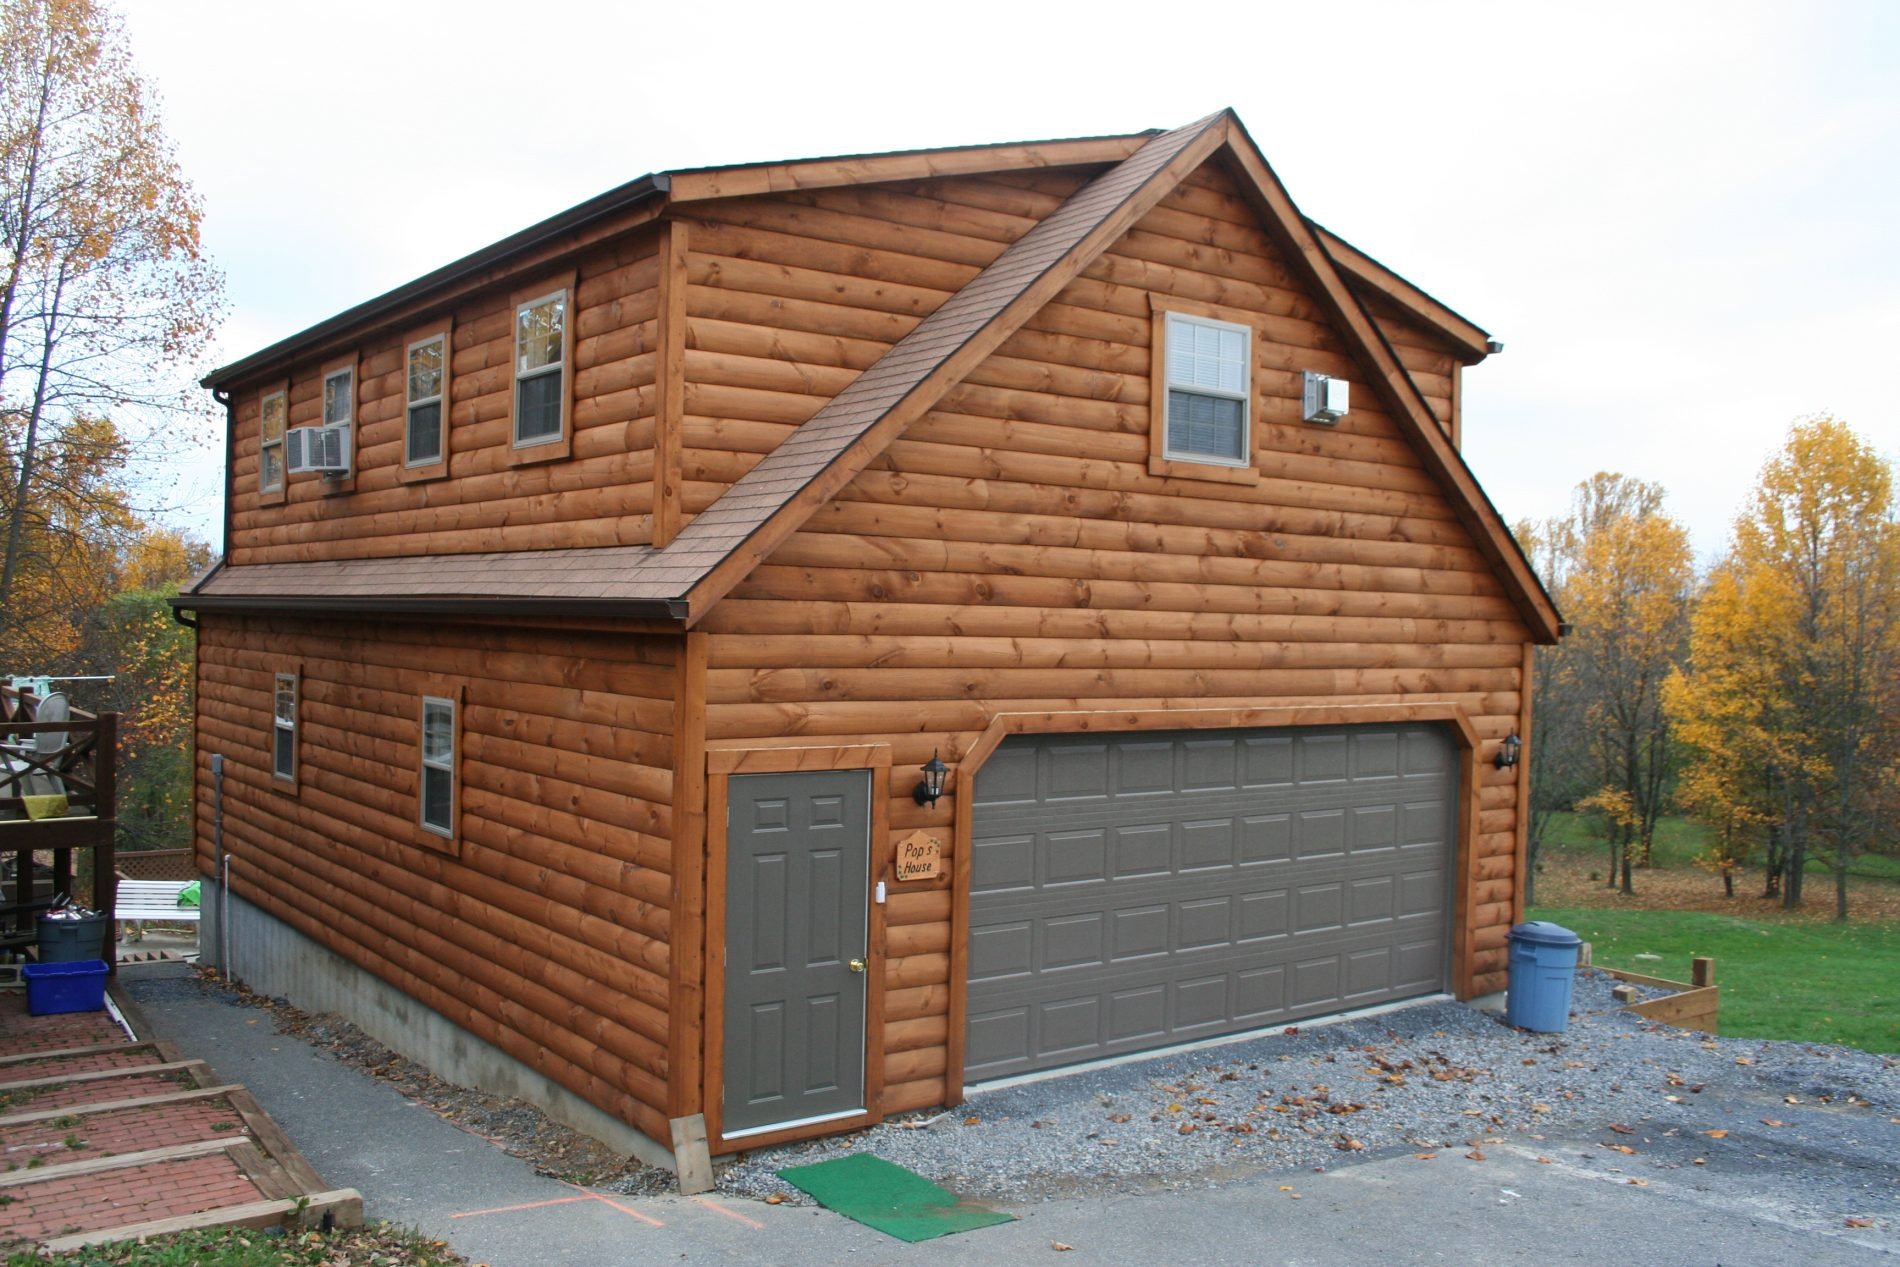 garages shed sheds depot car kits carports prefabricated garage tuff aluminum homes two storage com comorage home